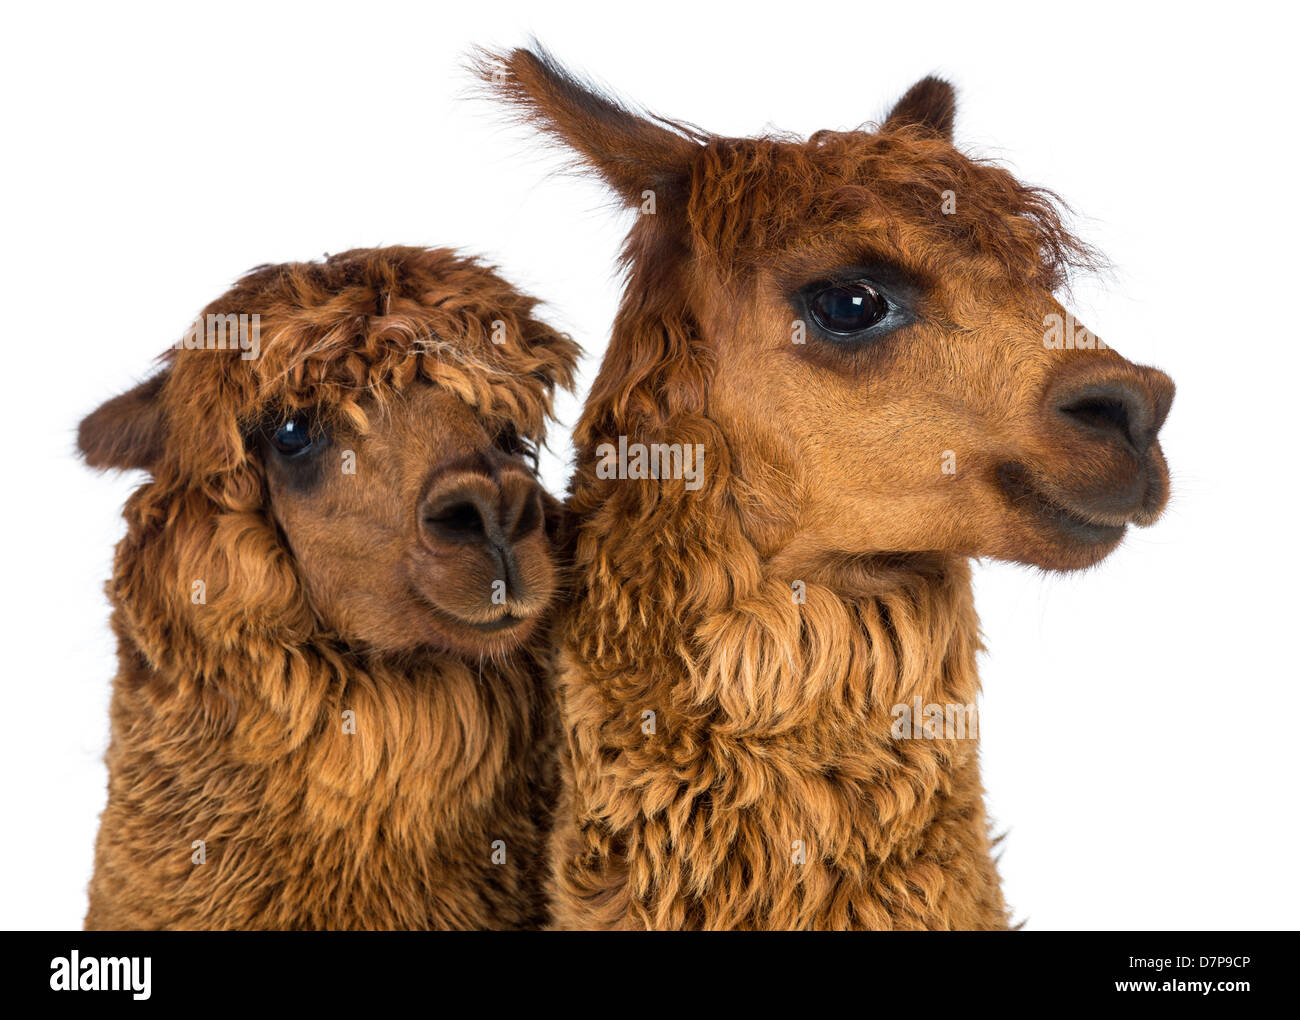 Close-up of two Alpacas, Vicugna pacos, looking at the camera against white background Stock Photo